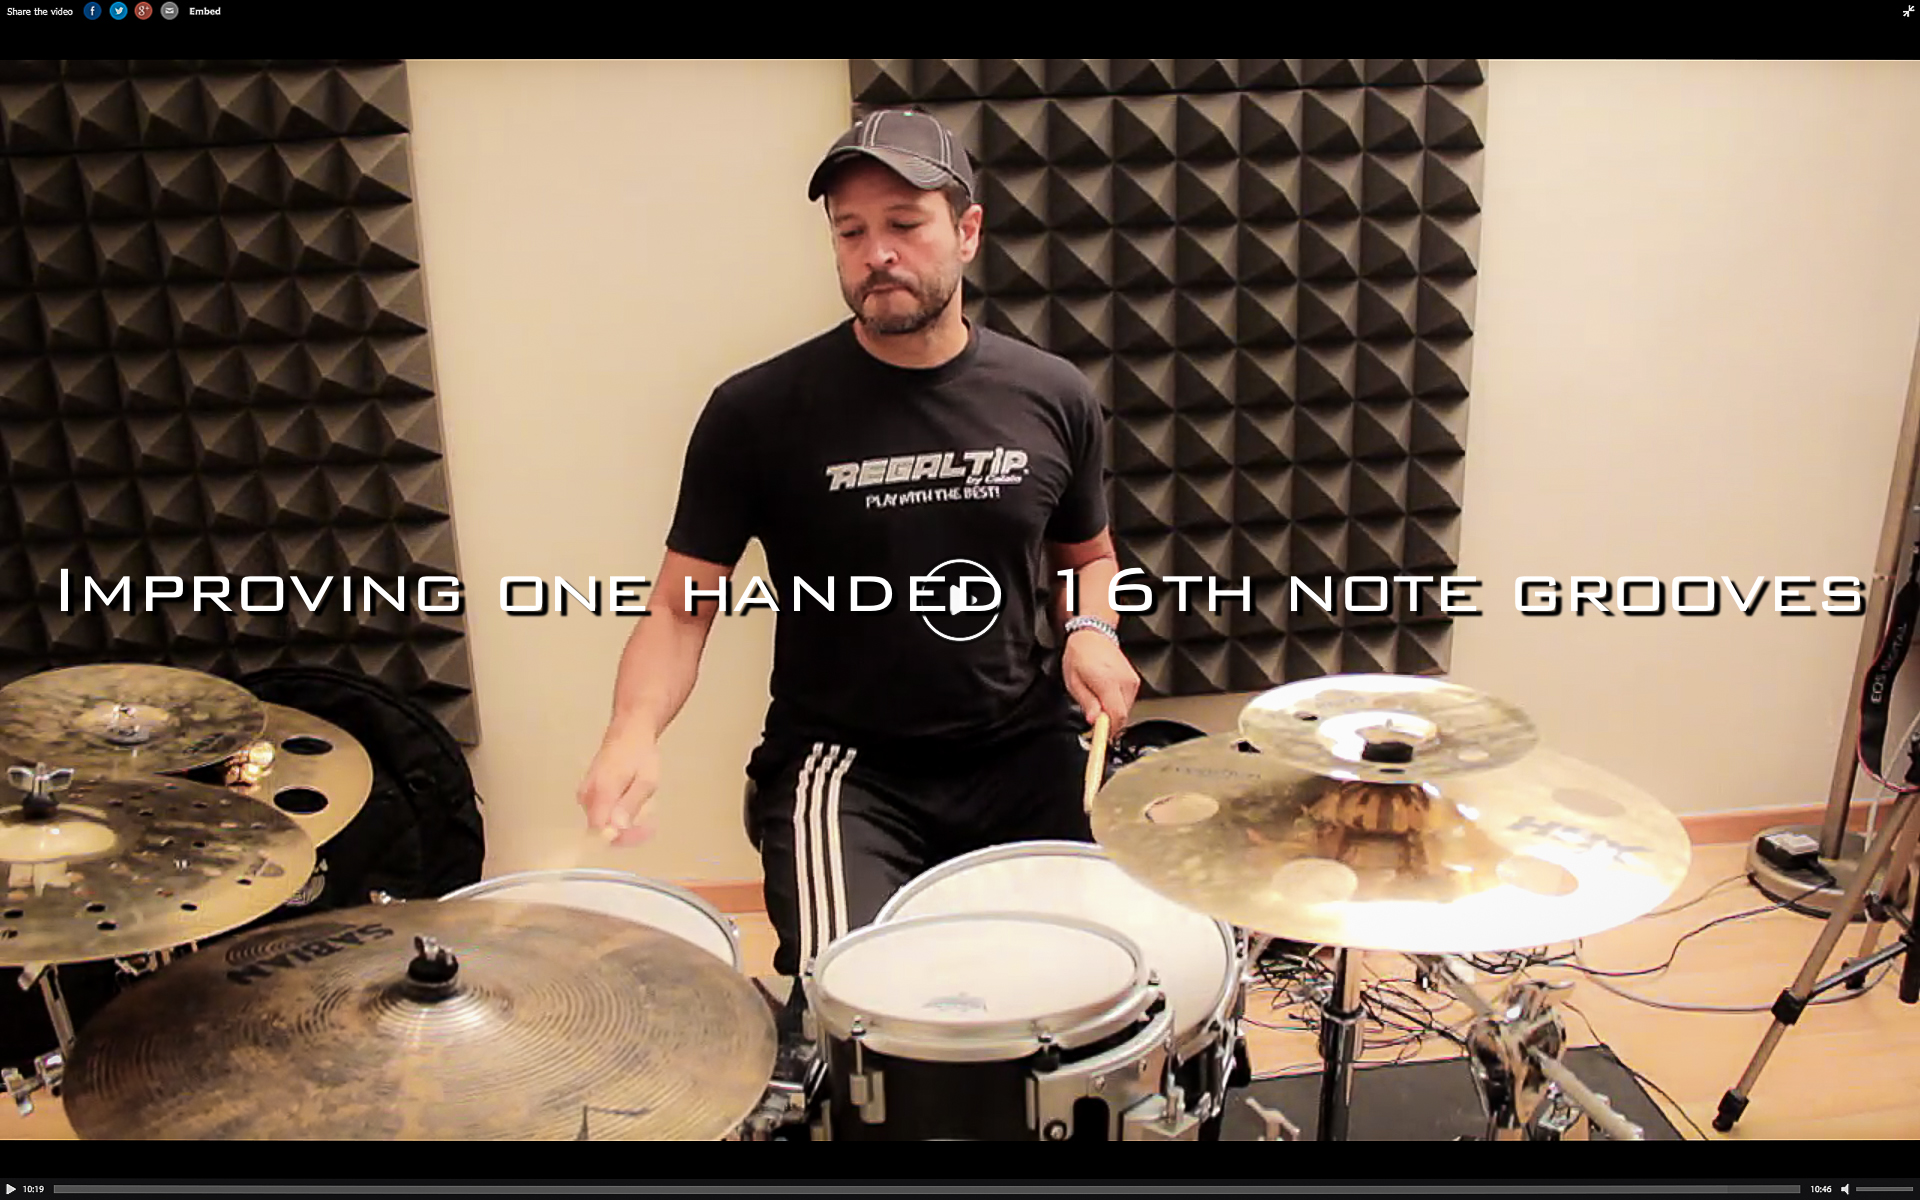 One handed 16th notes